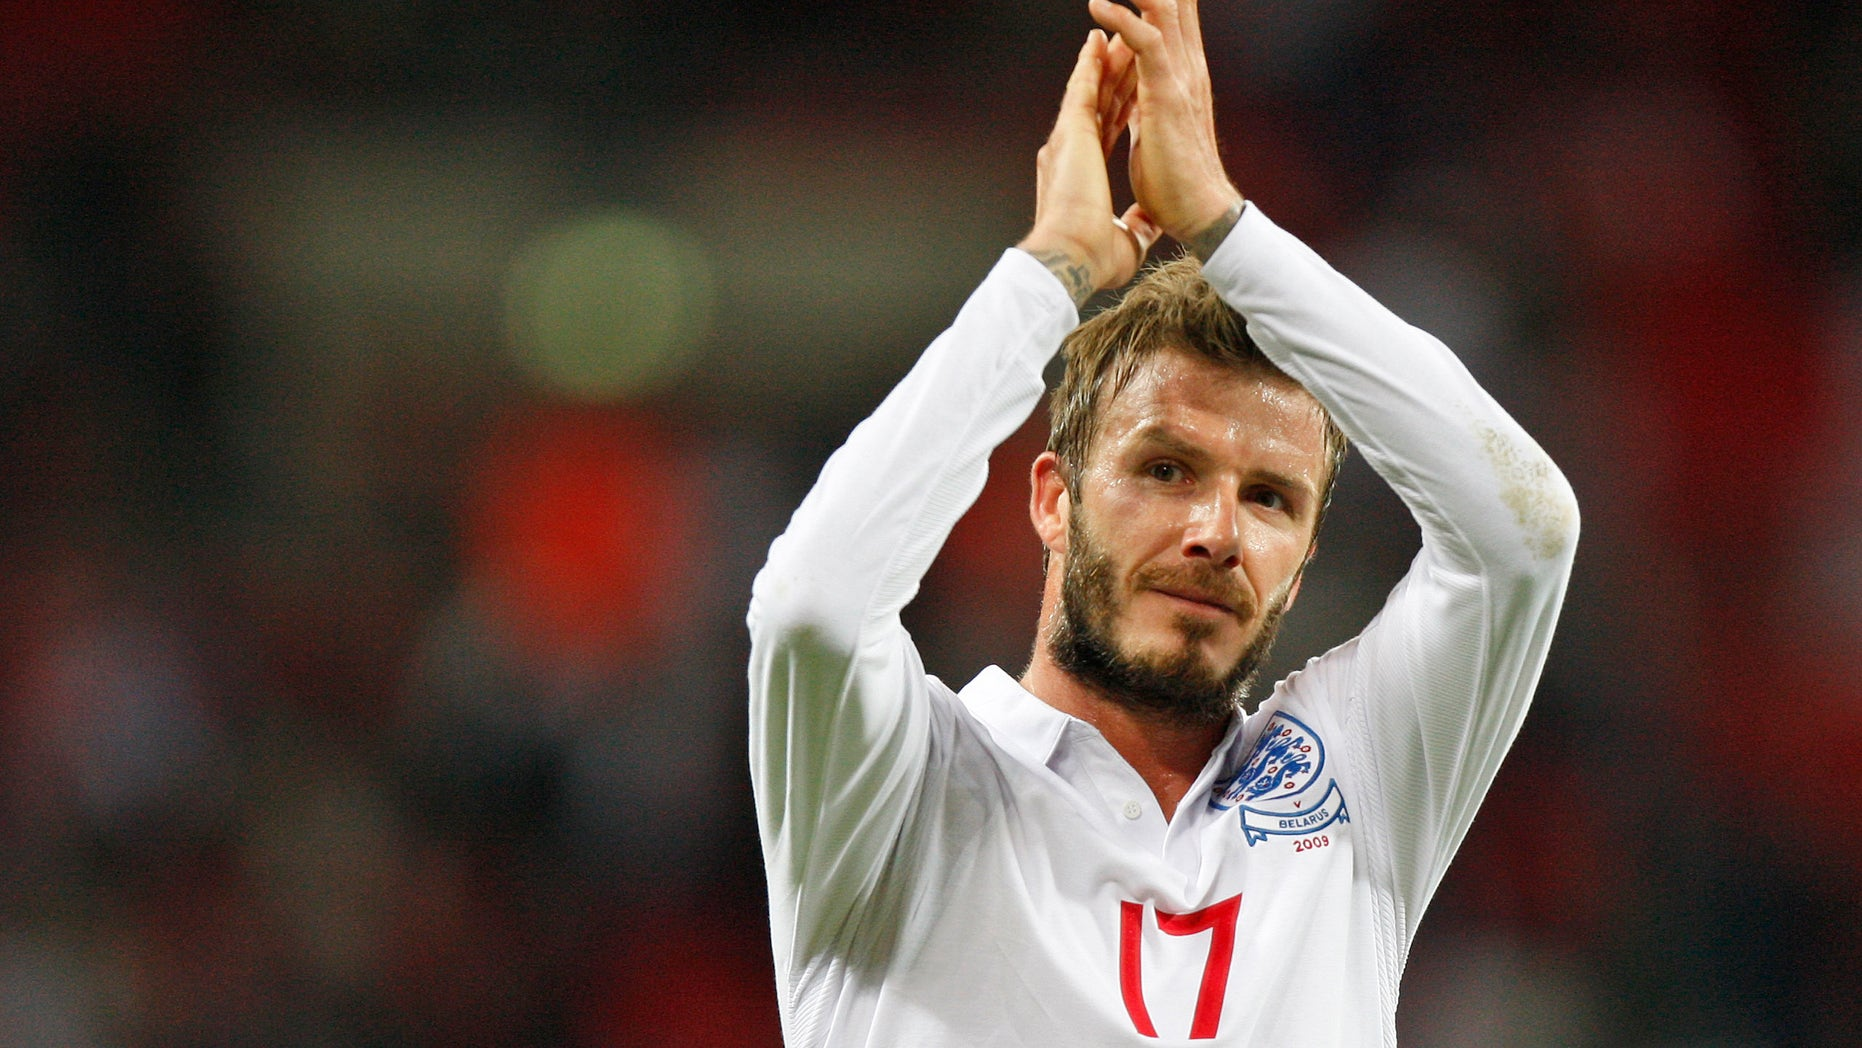 Oct. 14, 2009: This file photo shows England's David Beckham applauding the crowd after their World Cup group 6 qualifying soccer match against Belarus at Wembley Stadium, London.